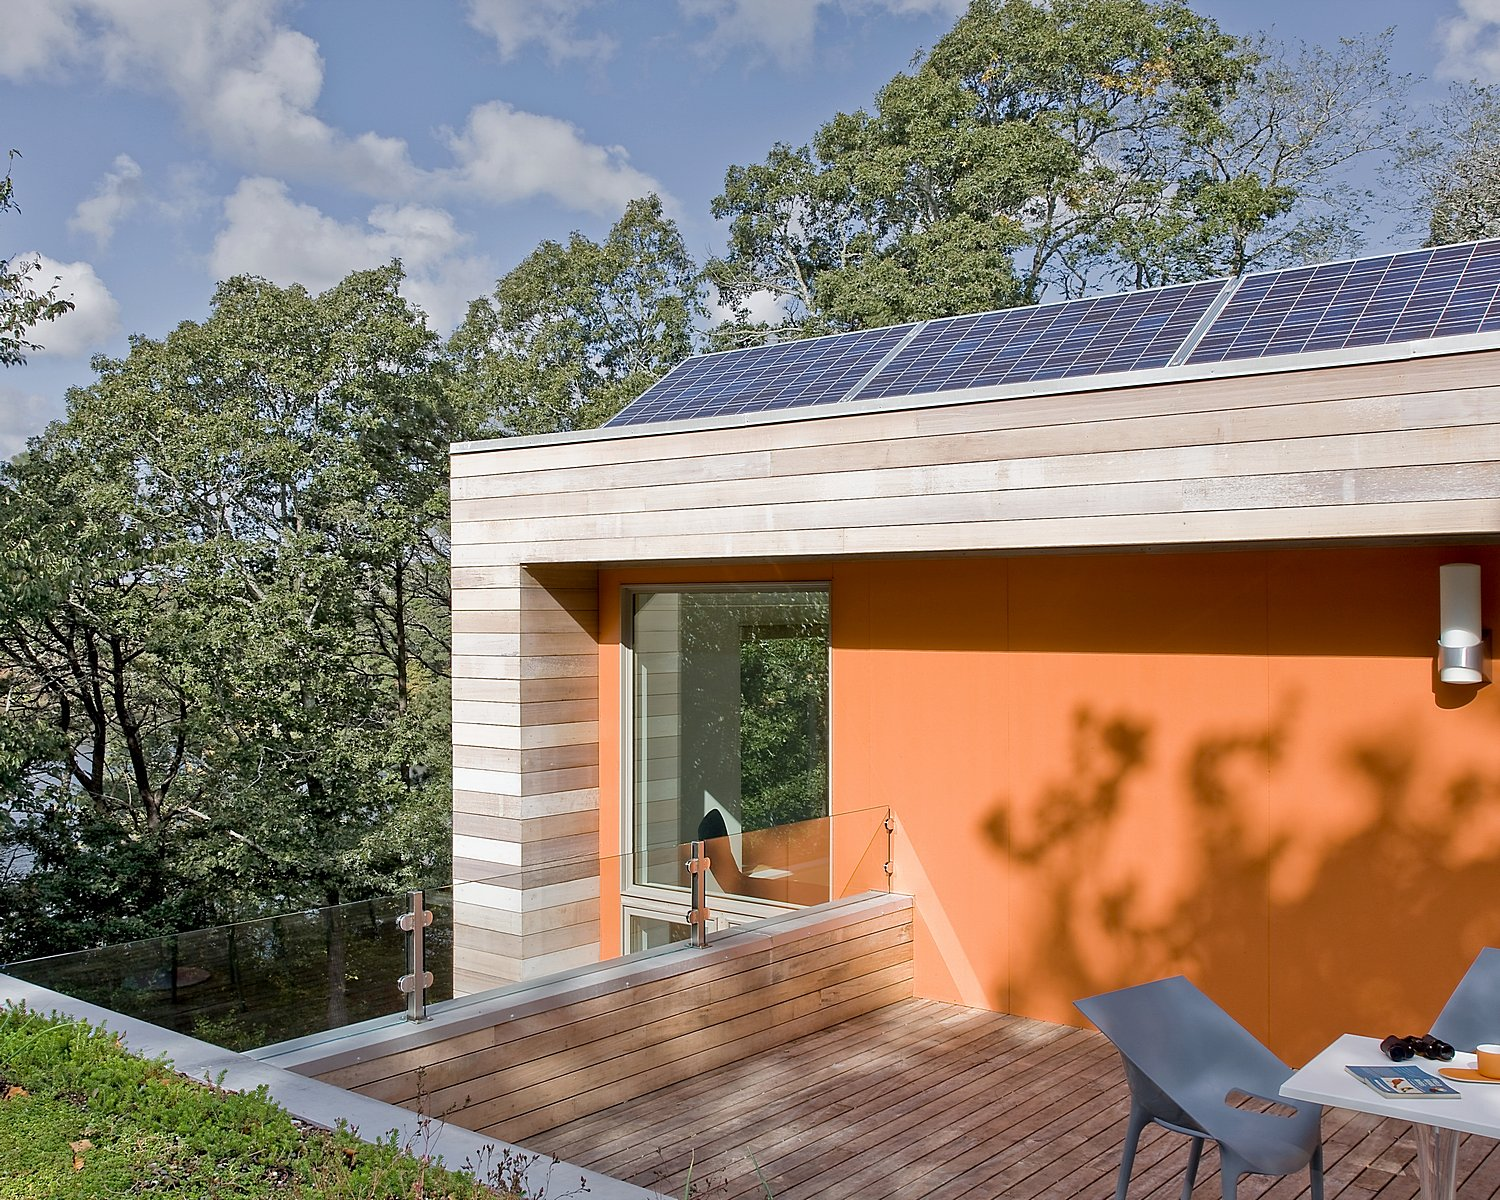 Green home with solar panels on roof